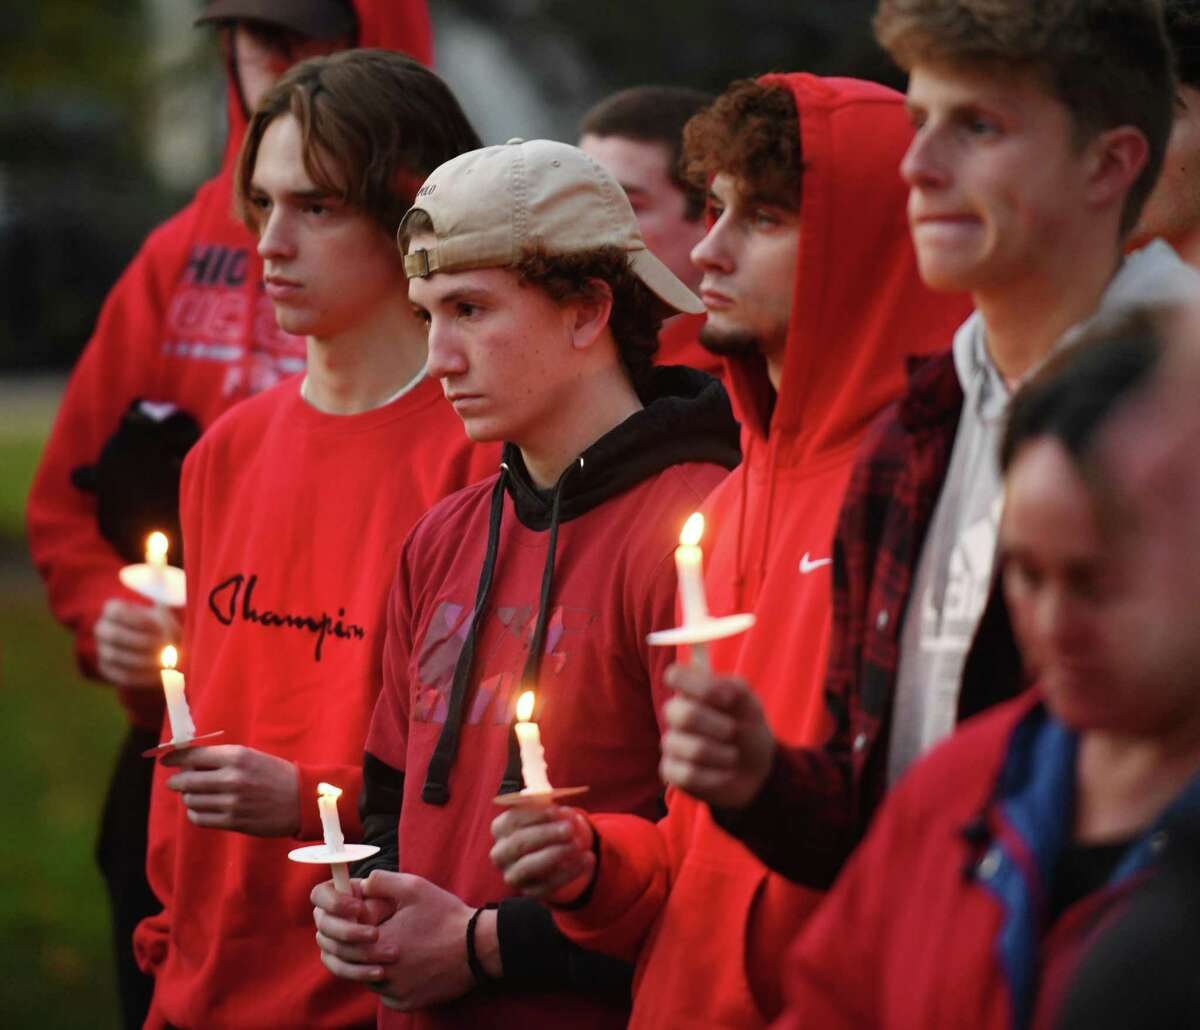 Friends and family attend the vigil for Colchester residents Jacob Chapman and Tyler Graham, both 18, at the Town Green in Colchester, Conn. Sunday, Oct. 24, 2021. Chapman and Graham, lacrosse players at Western Connecticut State University, were killed in a car crash in Colchester Friday afternoon. A third student, Trey Massaro, 19, of Dalton, Mass., was airlifted to Hartford Hospital with serious injuries.